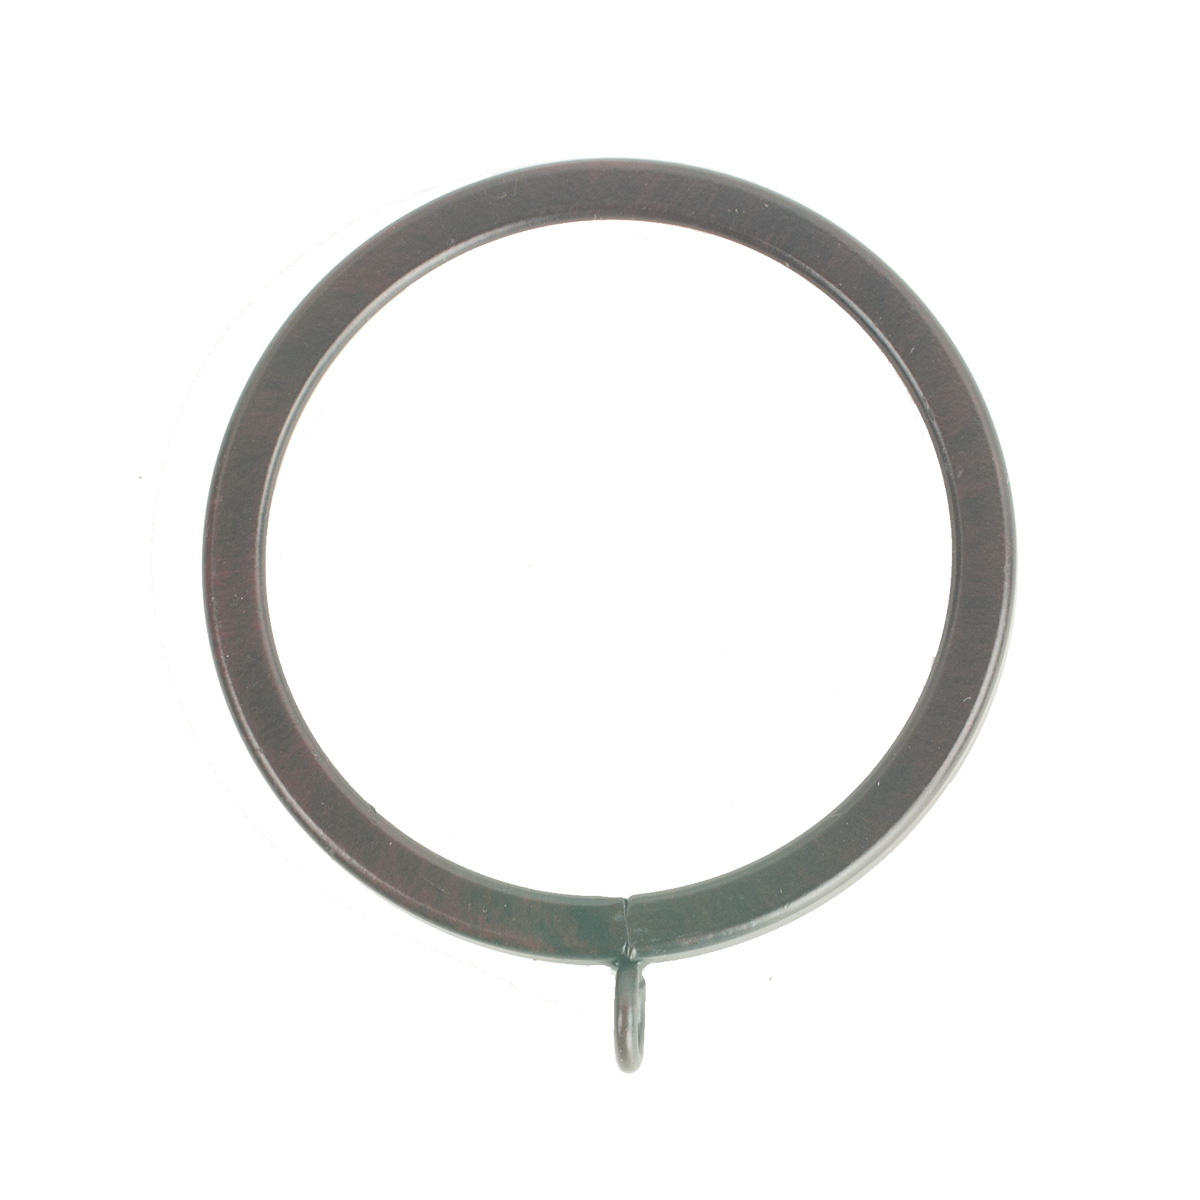 Flat Lined Rings 2 Espresso (10 Per Pack)